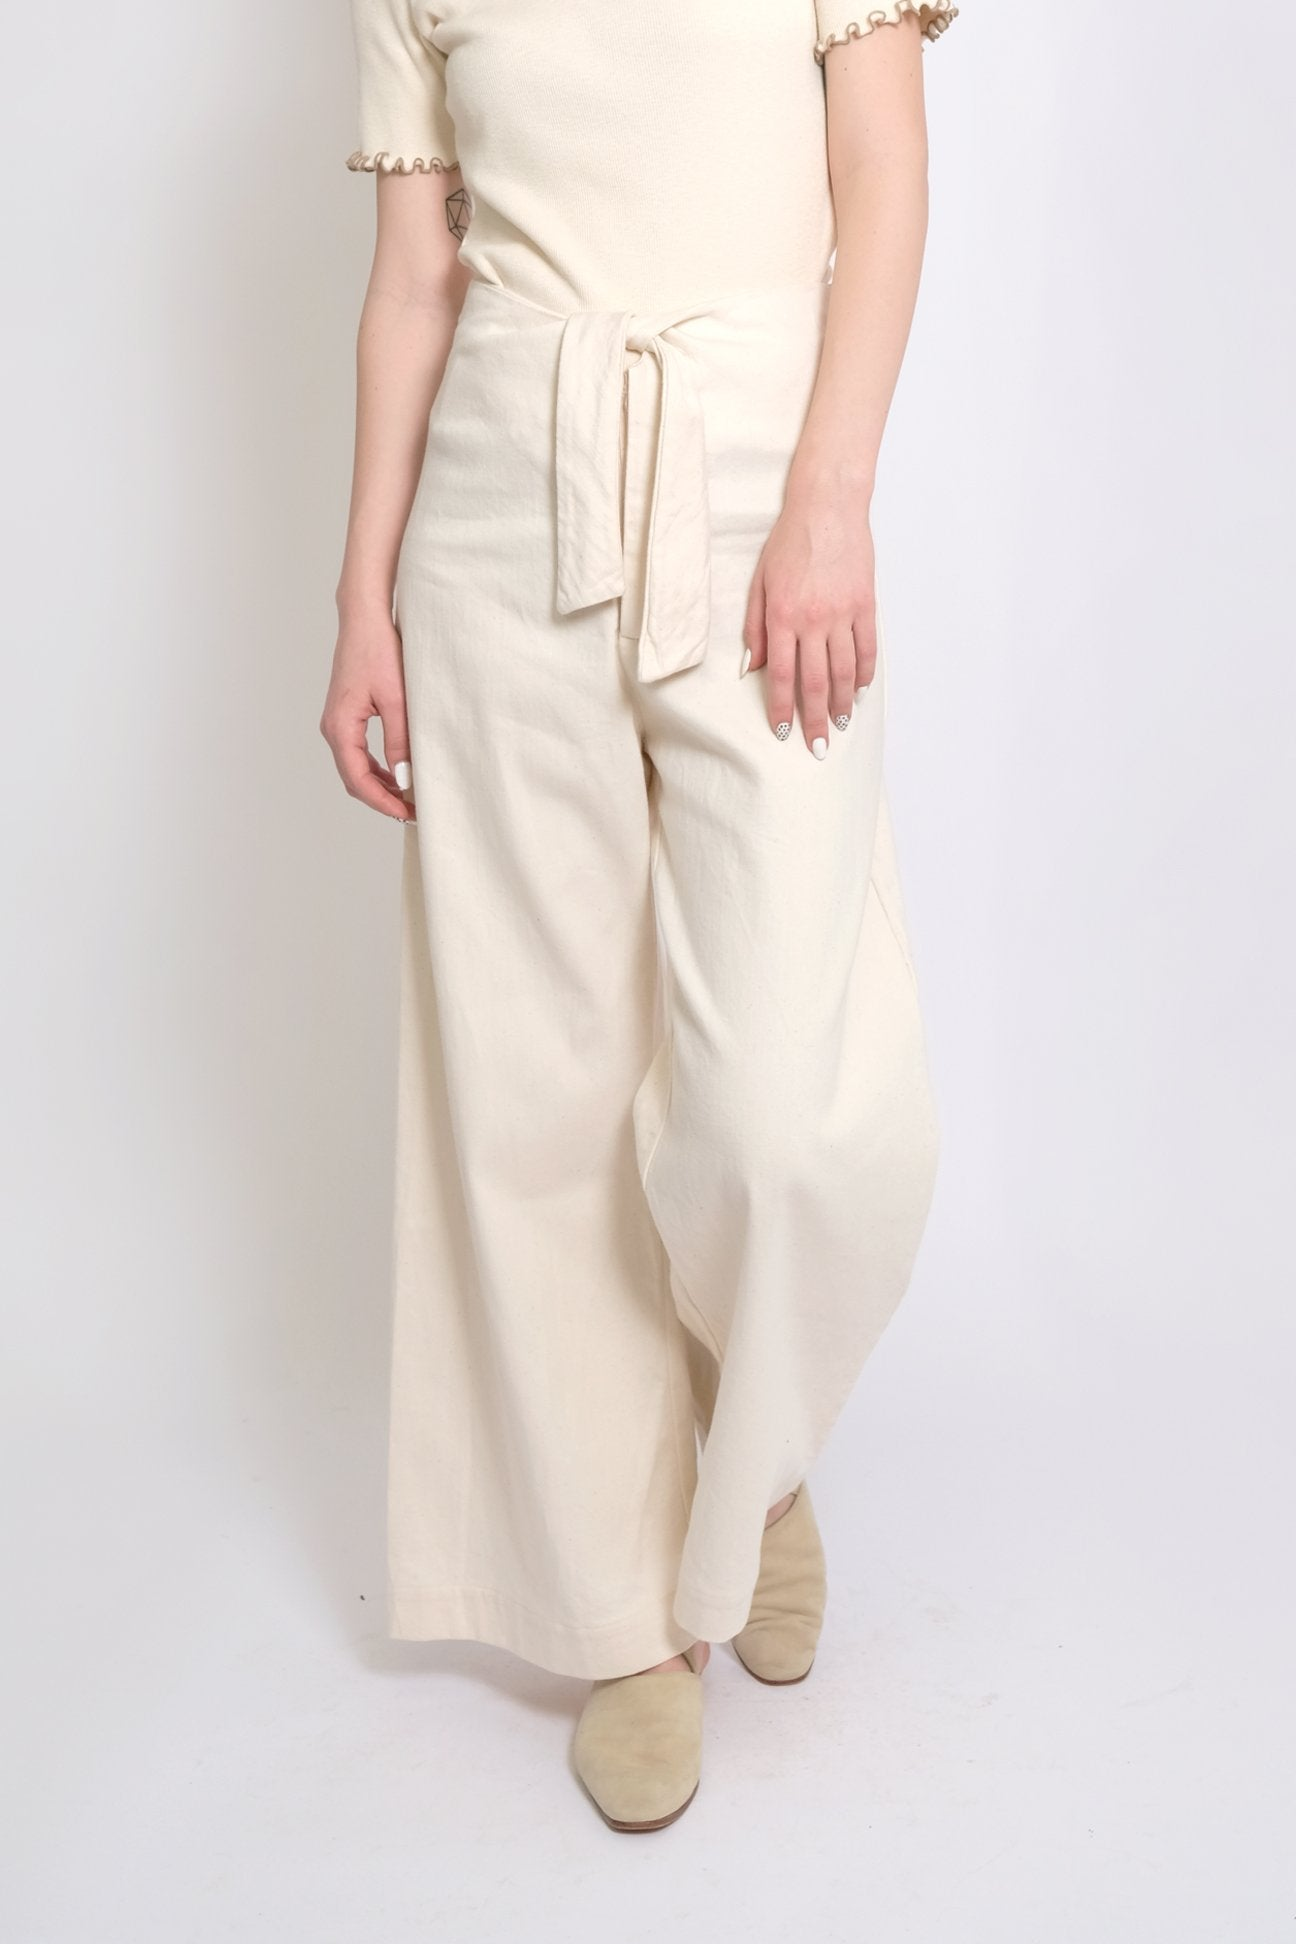 Micaela Greg Knotted Sailor Pant